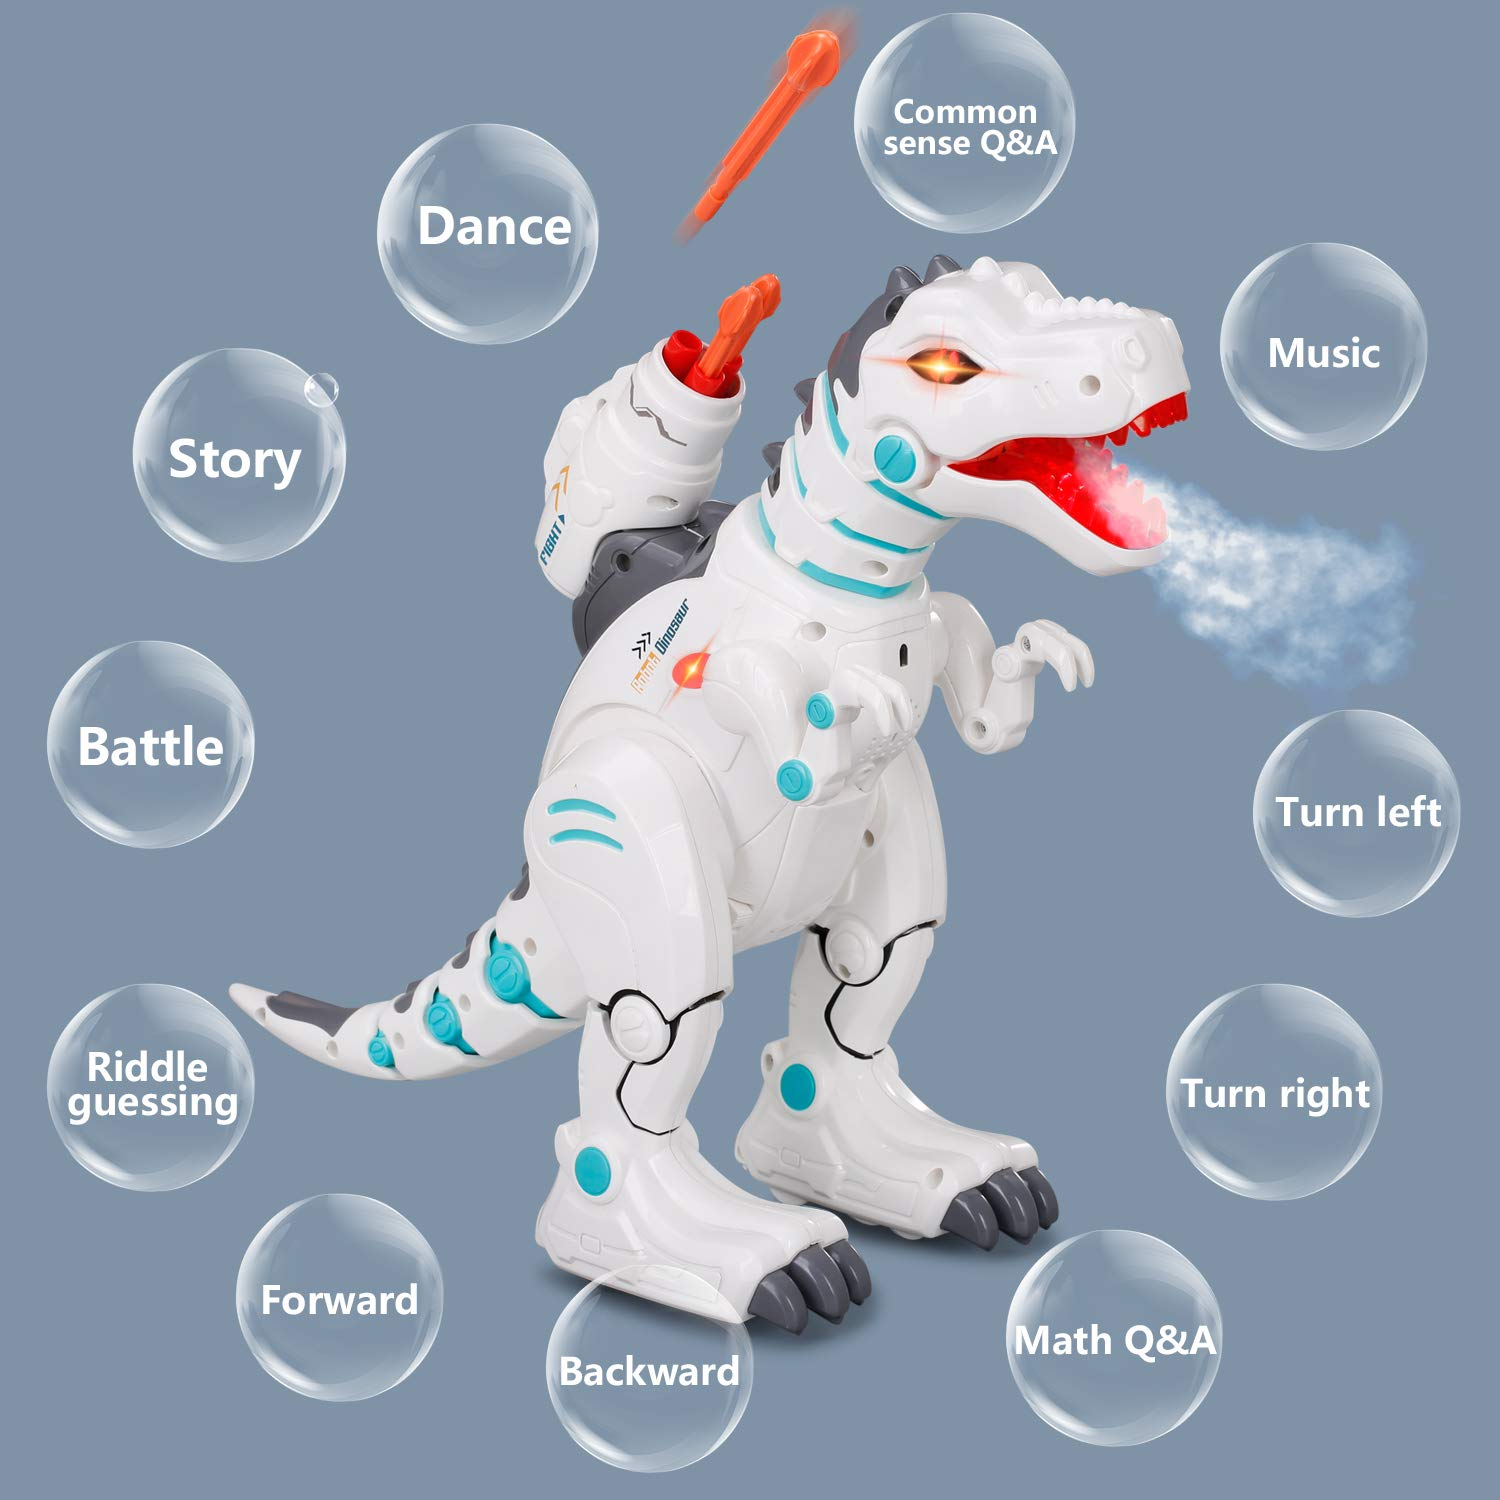 JIEQI Remote Control Dinosaur Robot for Kids,Intelligent Robot Toys Sings Dances Sprays Mist Launches Missiles Walking Fight Models Electronic RC Robot Toys for Boys Girls Gift by JIEQI (Image #4)